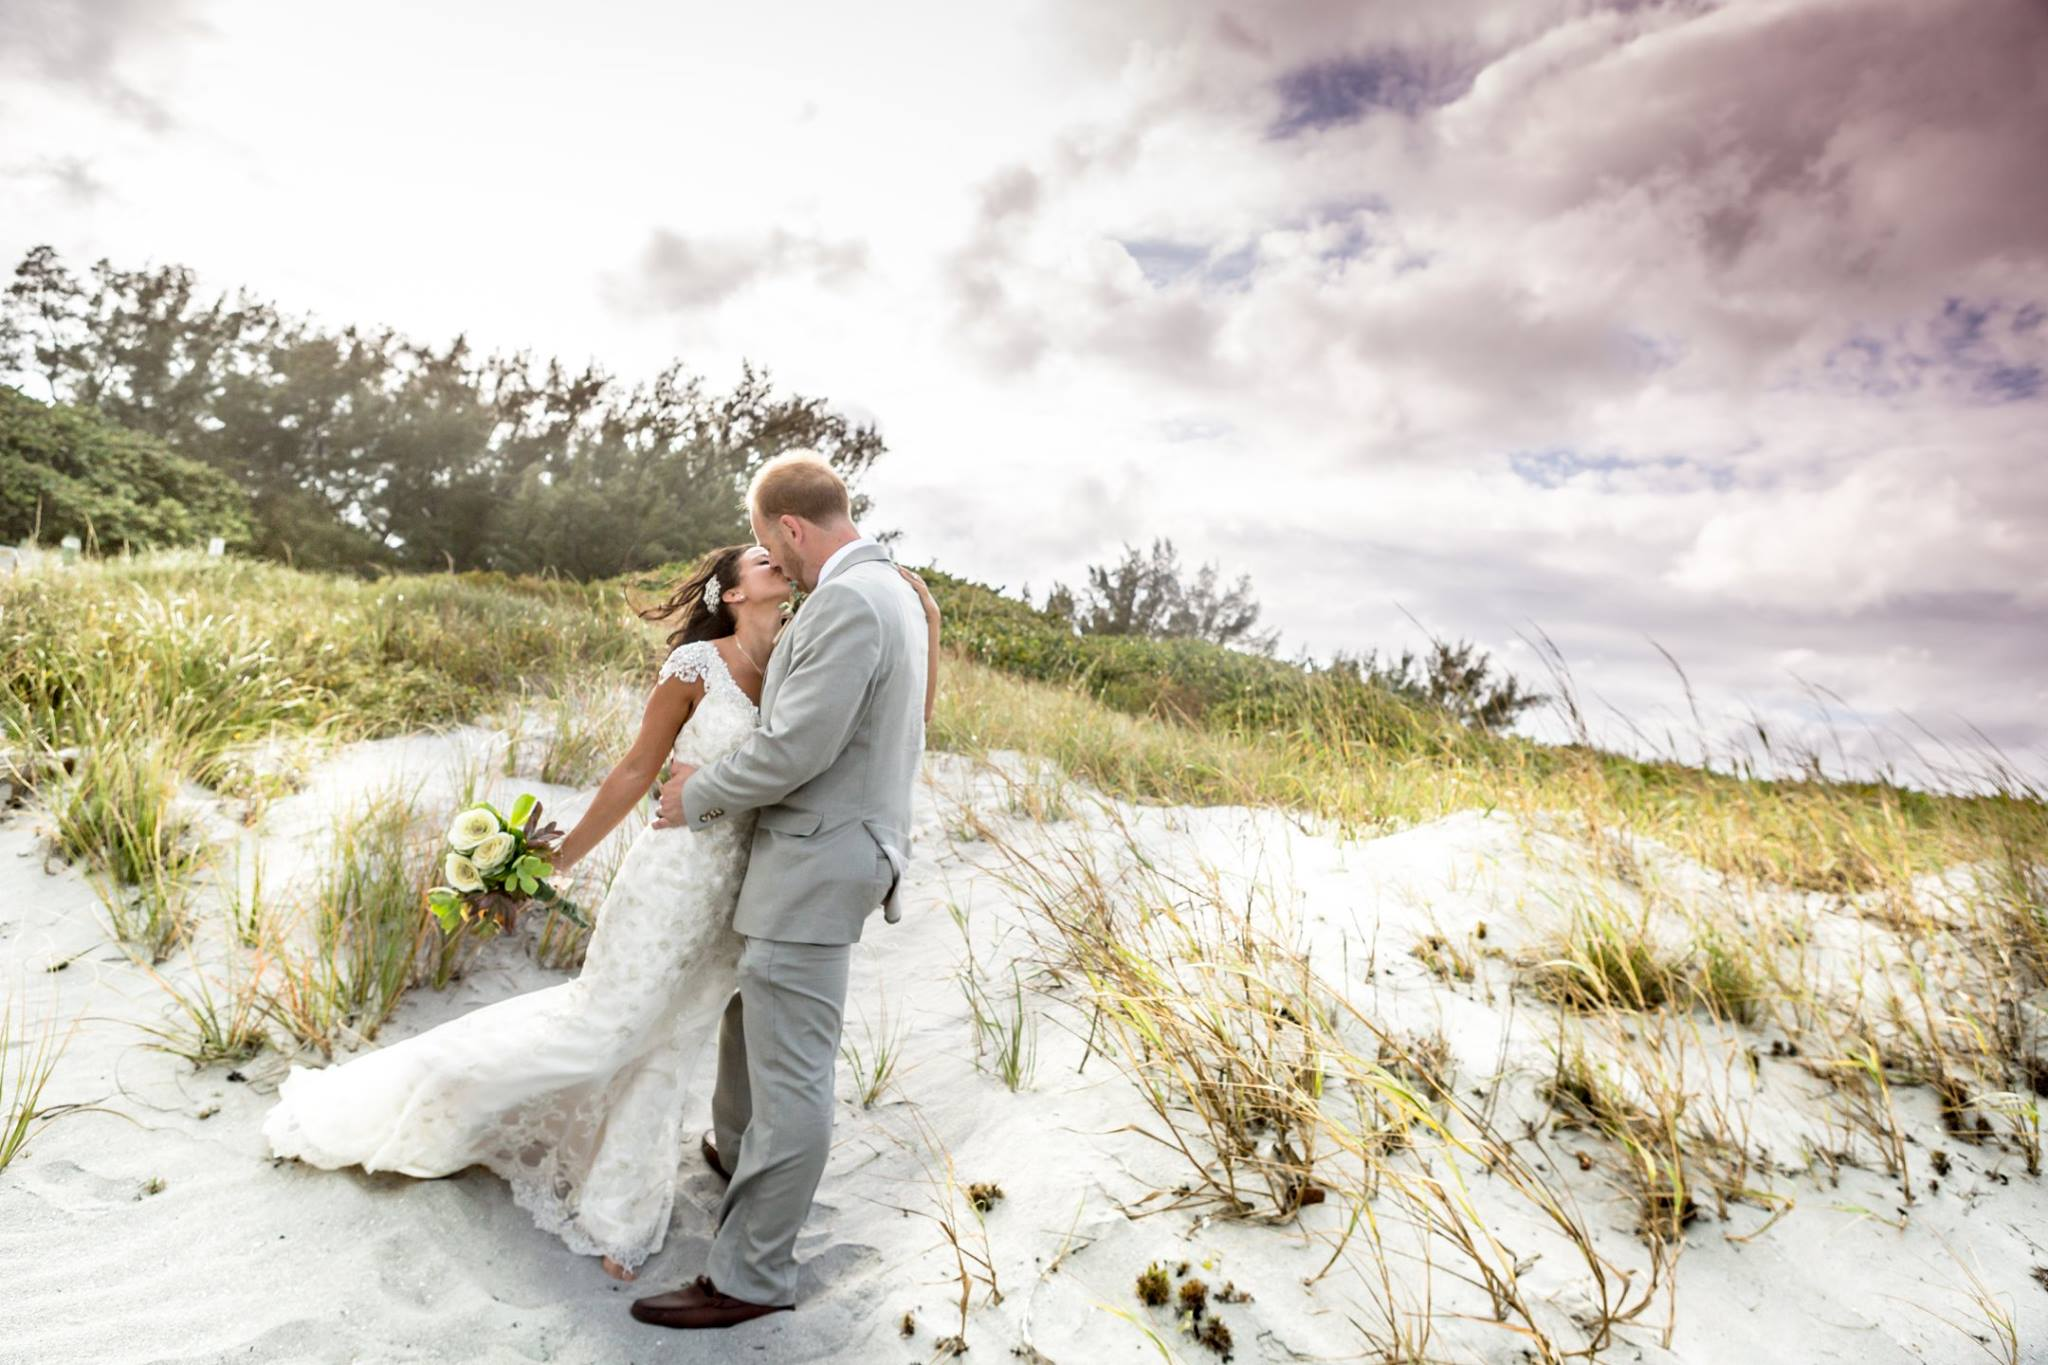 Wedding Photography Videography Ft Lauderdale